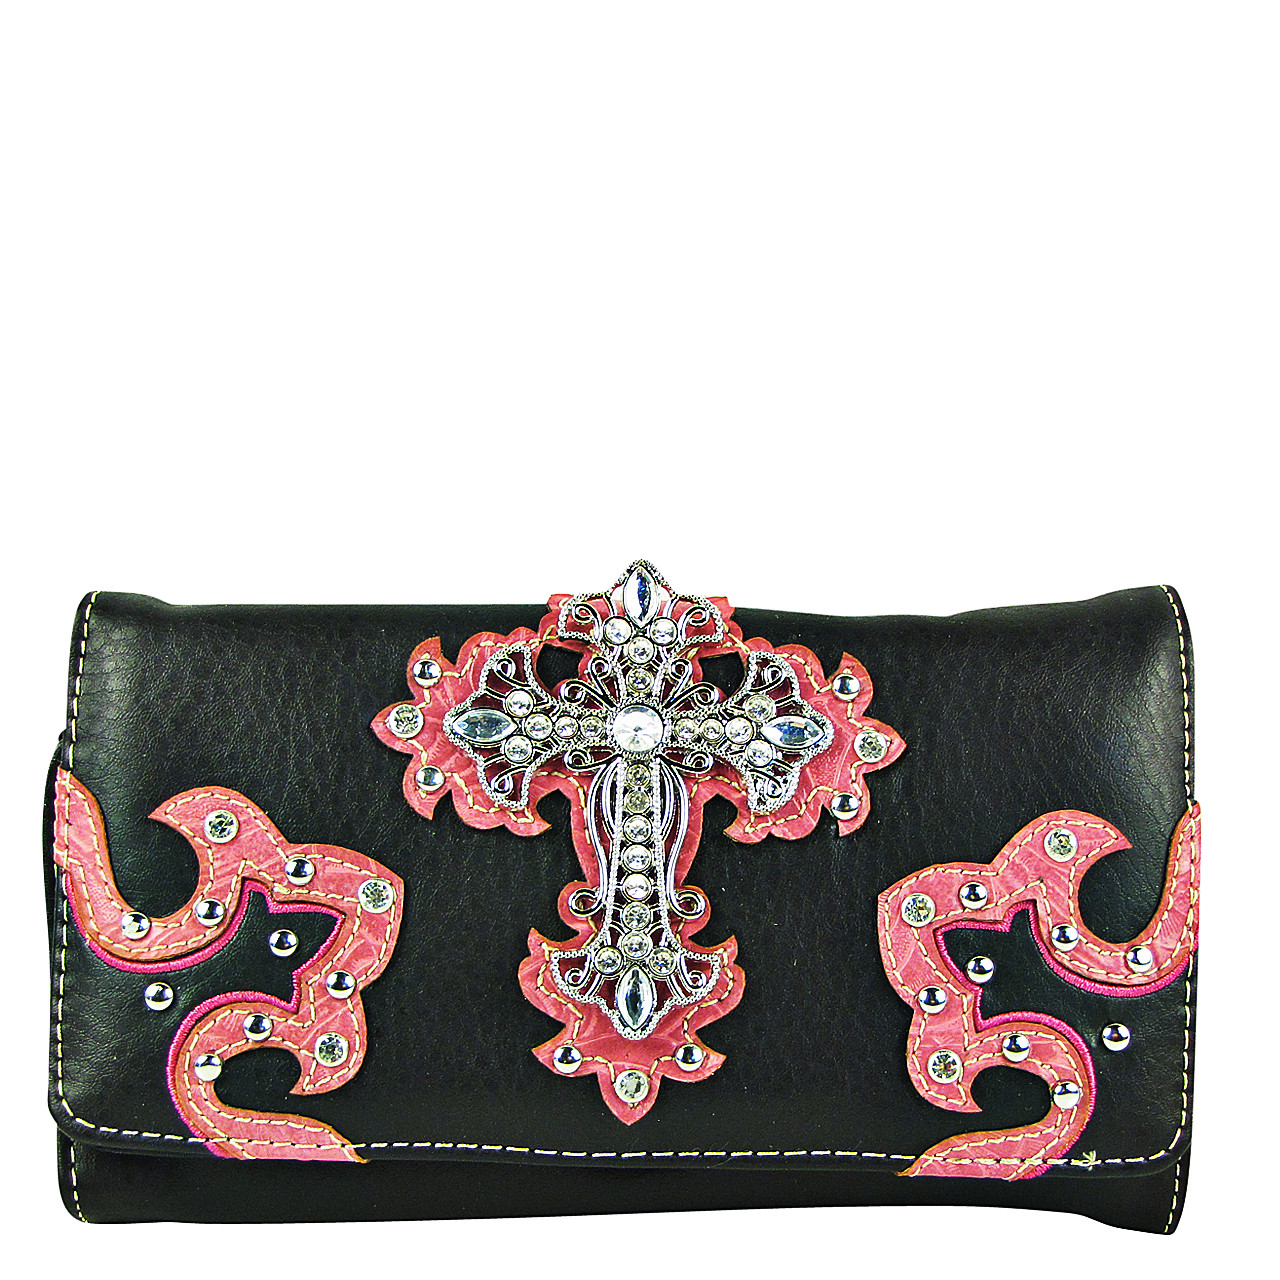 HOT PINK RHINESTONE CROSS STITCHING LEATHERETTE LOOK CLUTCH TRIFOLD WALLET CW1-0478HPK